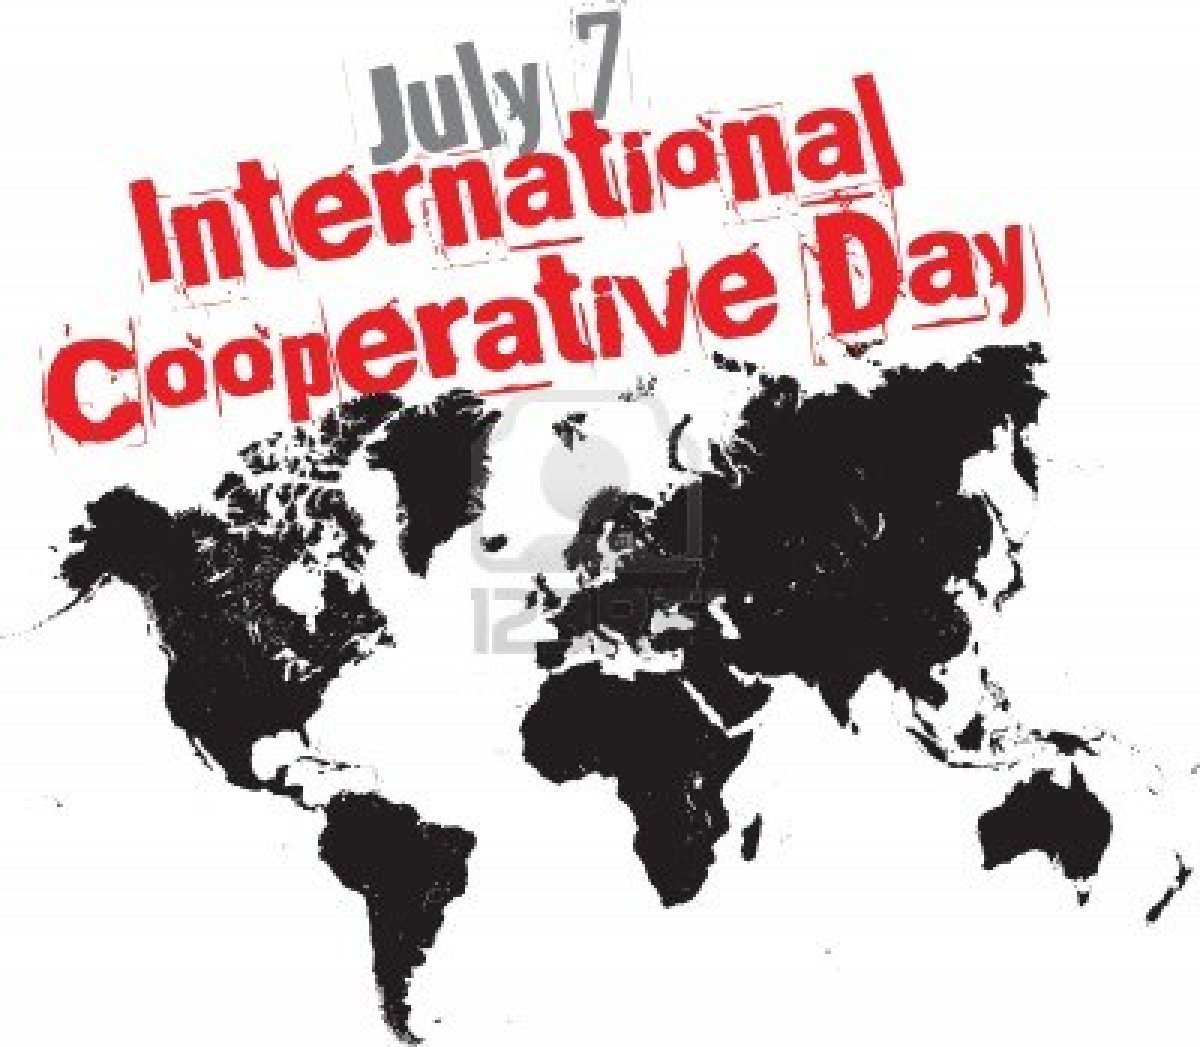 Celebrating Cooperatives (St Lucia)